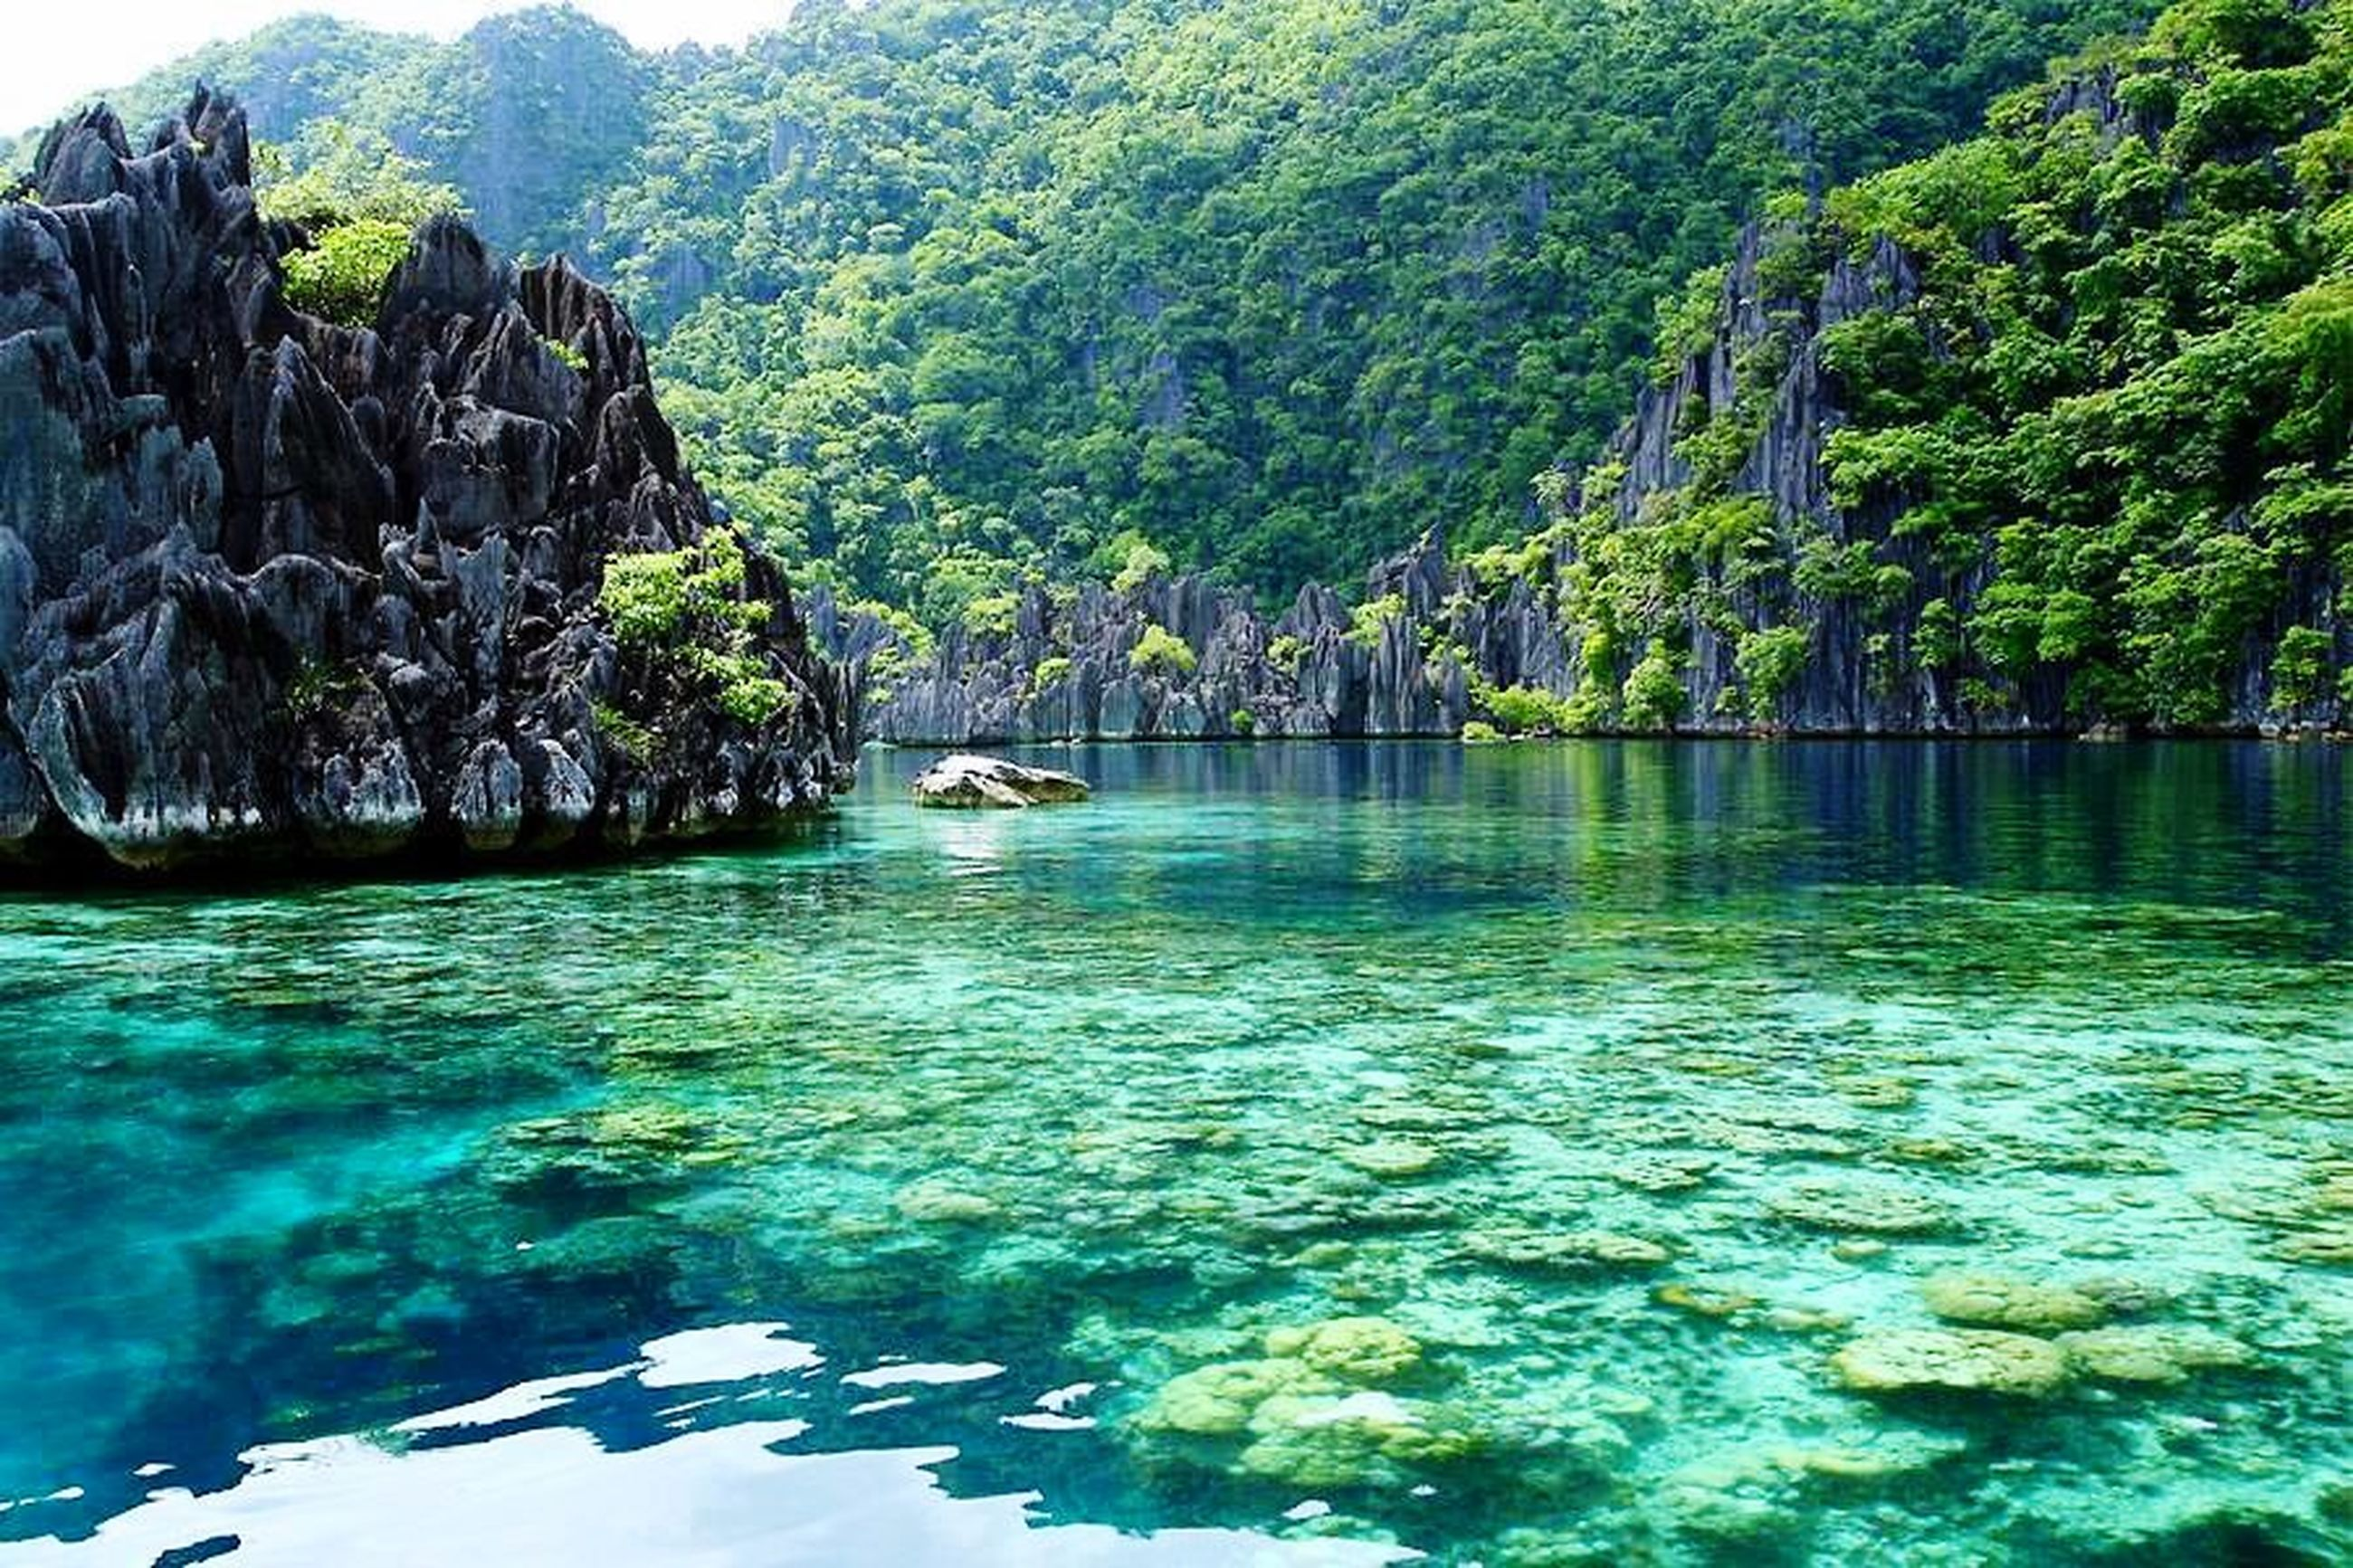 water, tree, tranquility, tranquil scene, beauty in nature, scenics, nature, waterfront, idyllic, sea, reflection, green color, blue, growth, rock - object, day, turquoise colored, mountain, lake, rippled